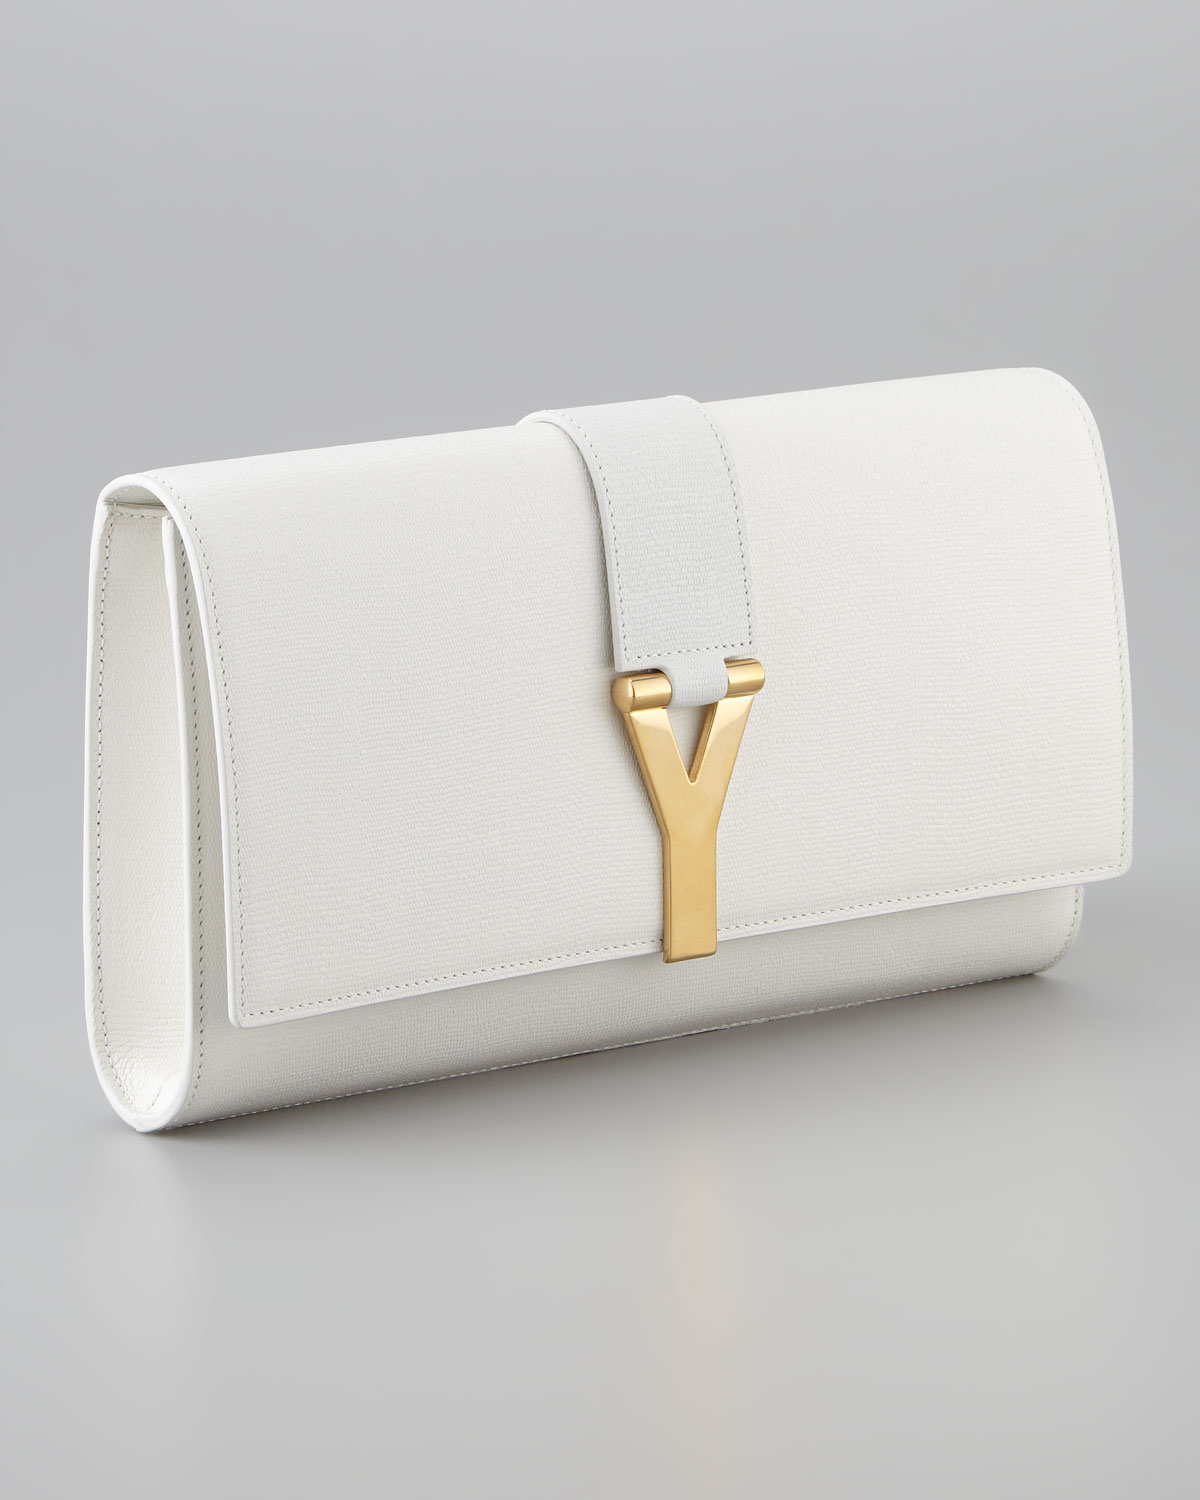 ysl cabas chyc large leather tote - Saint laurent Cabas Chyc Clutch Bag in White (off white) | Lyst